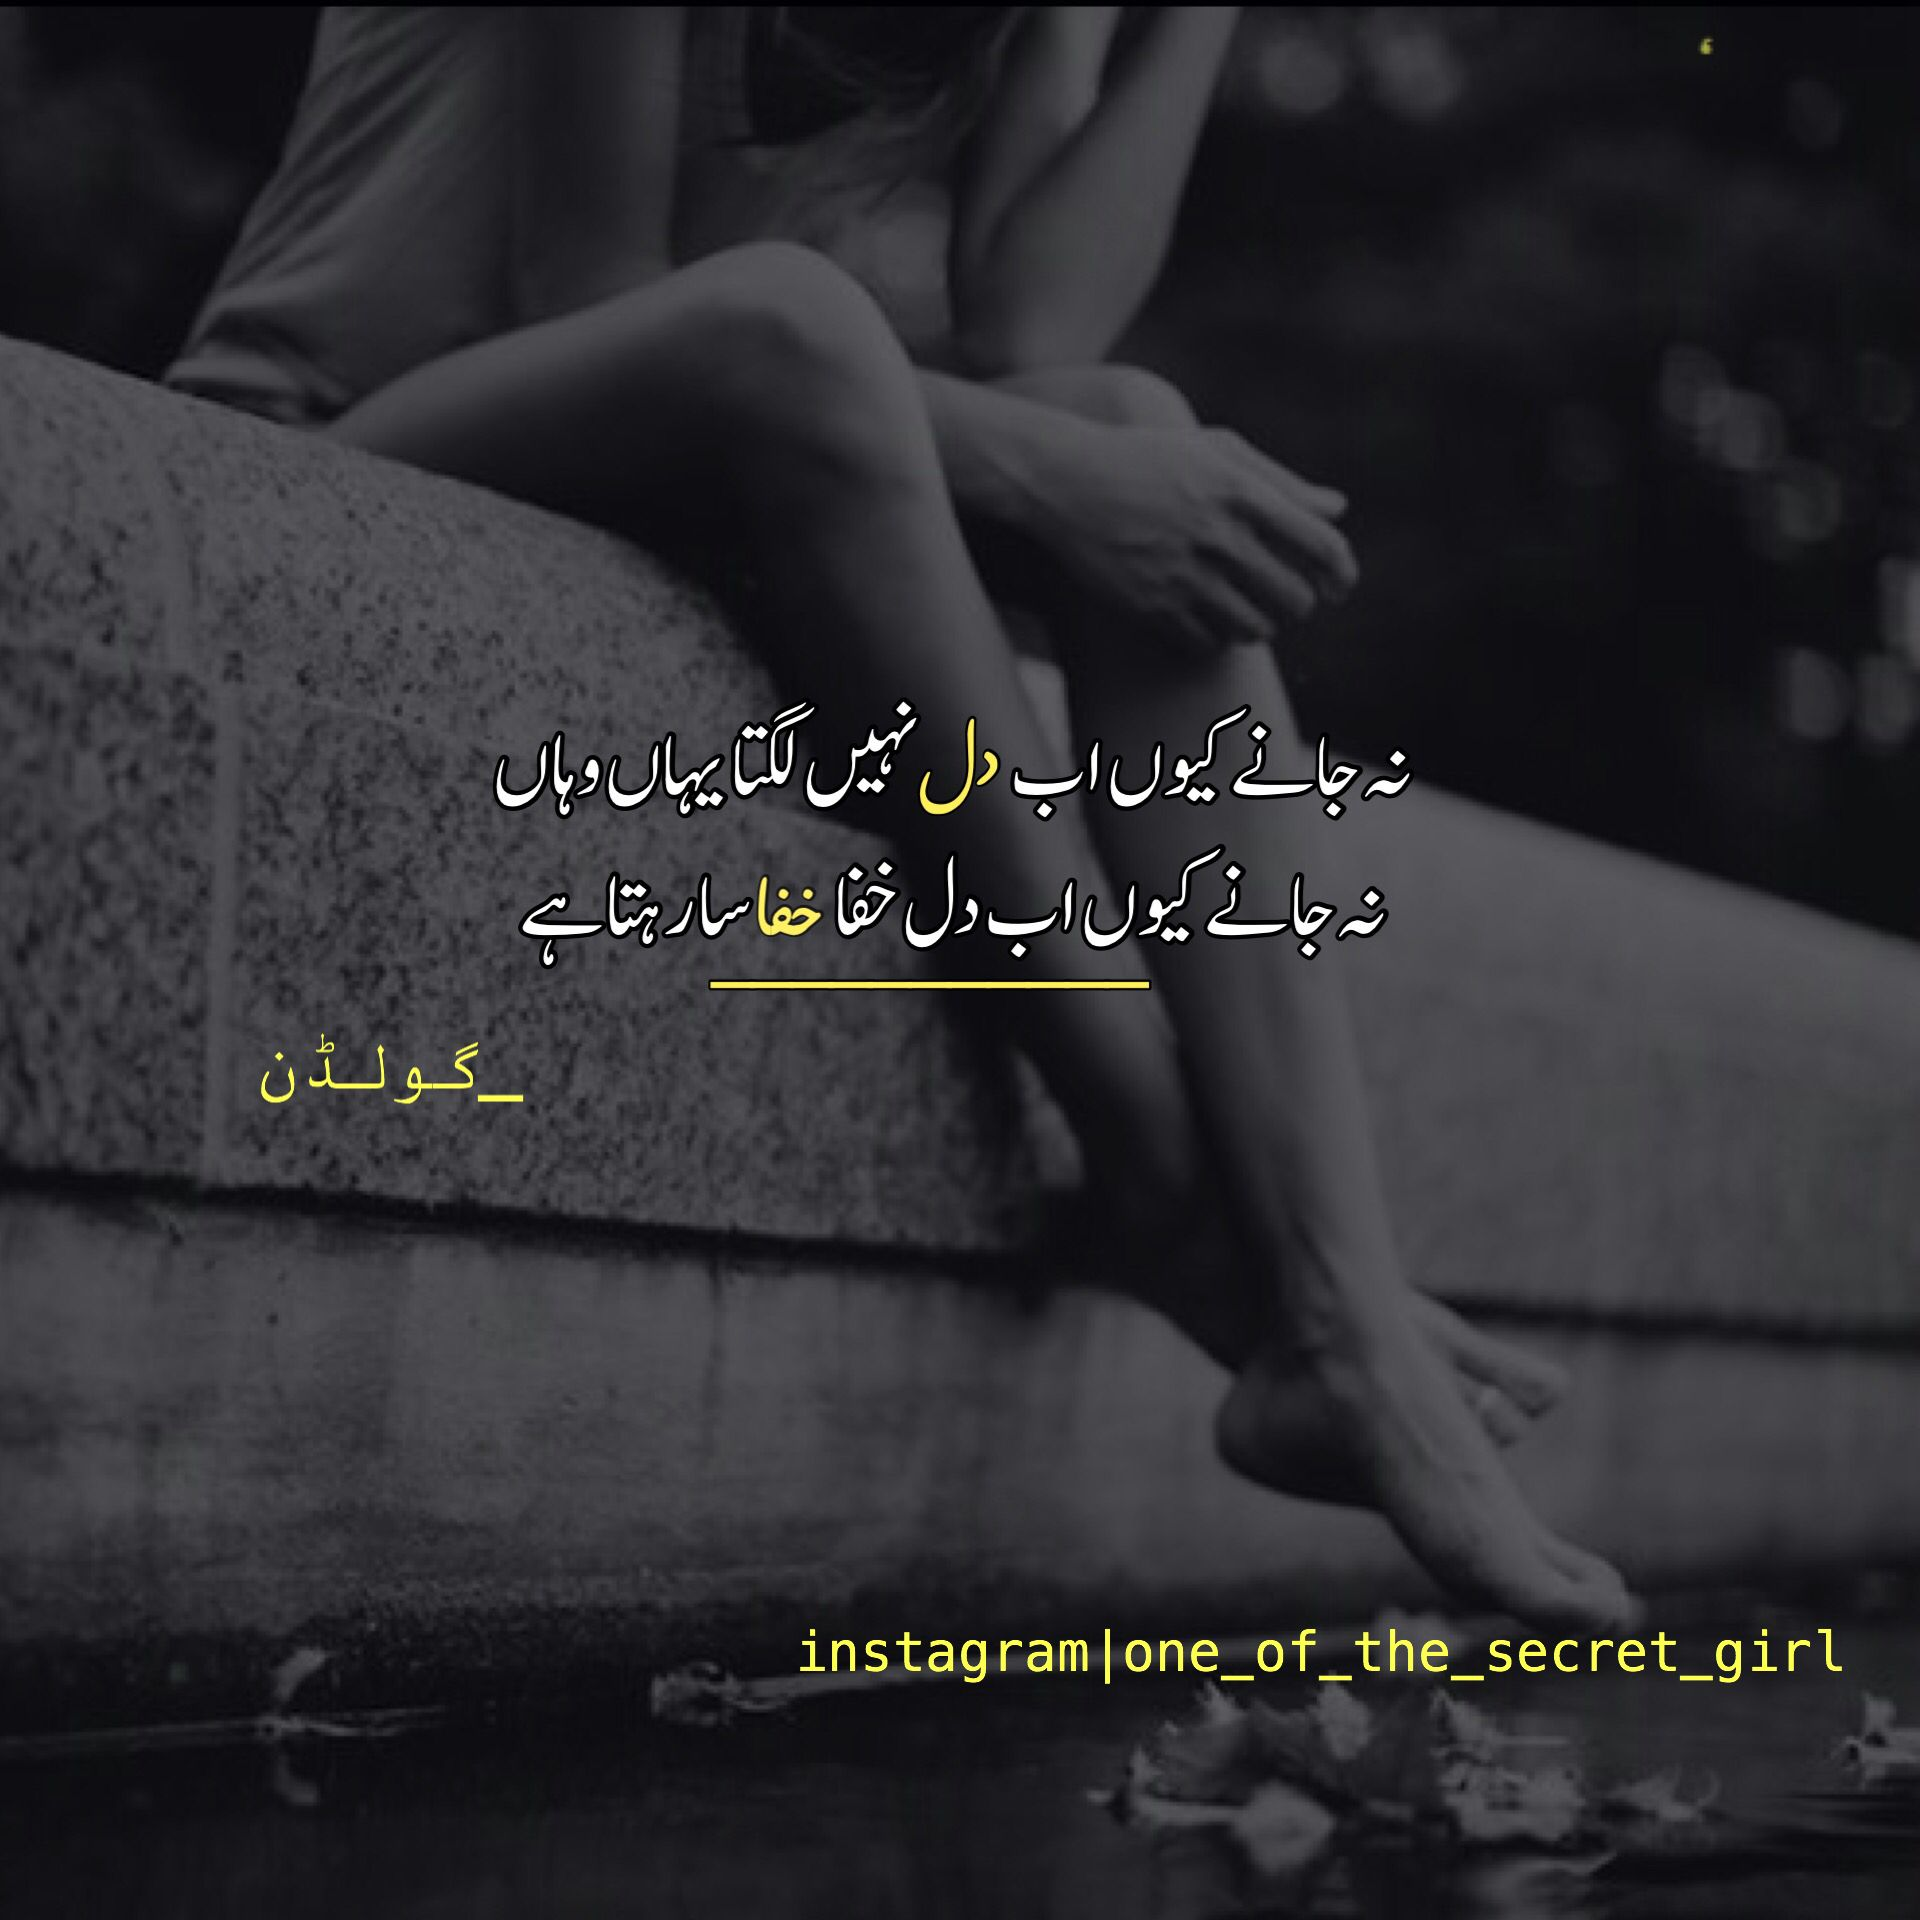 Heart Touching Love Quotes For My Girlfriend: #one_of_the_secret_girl #love #life #zindagi #jaan